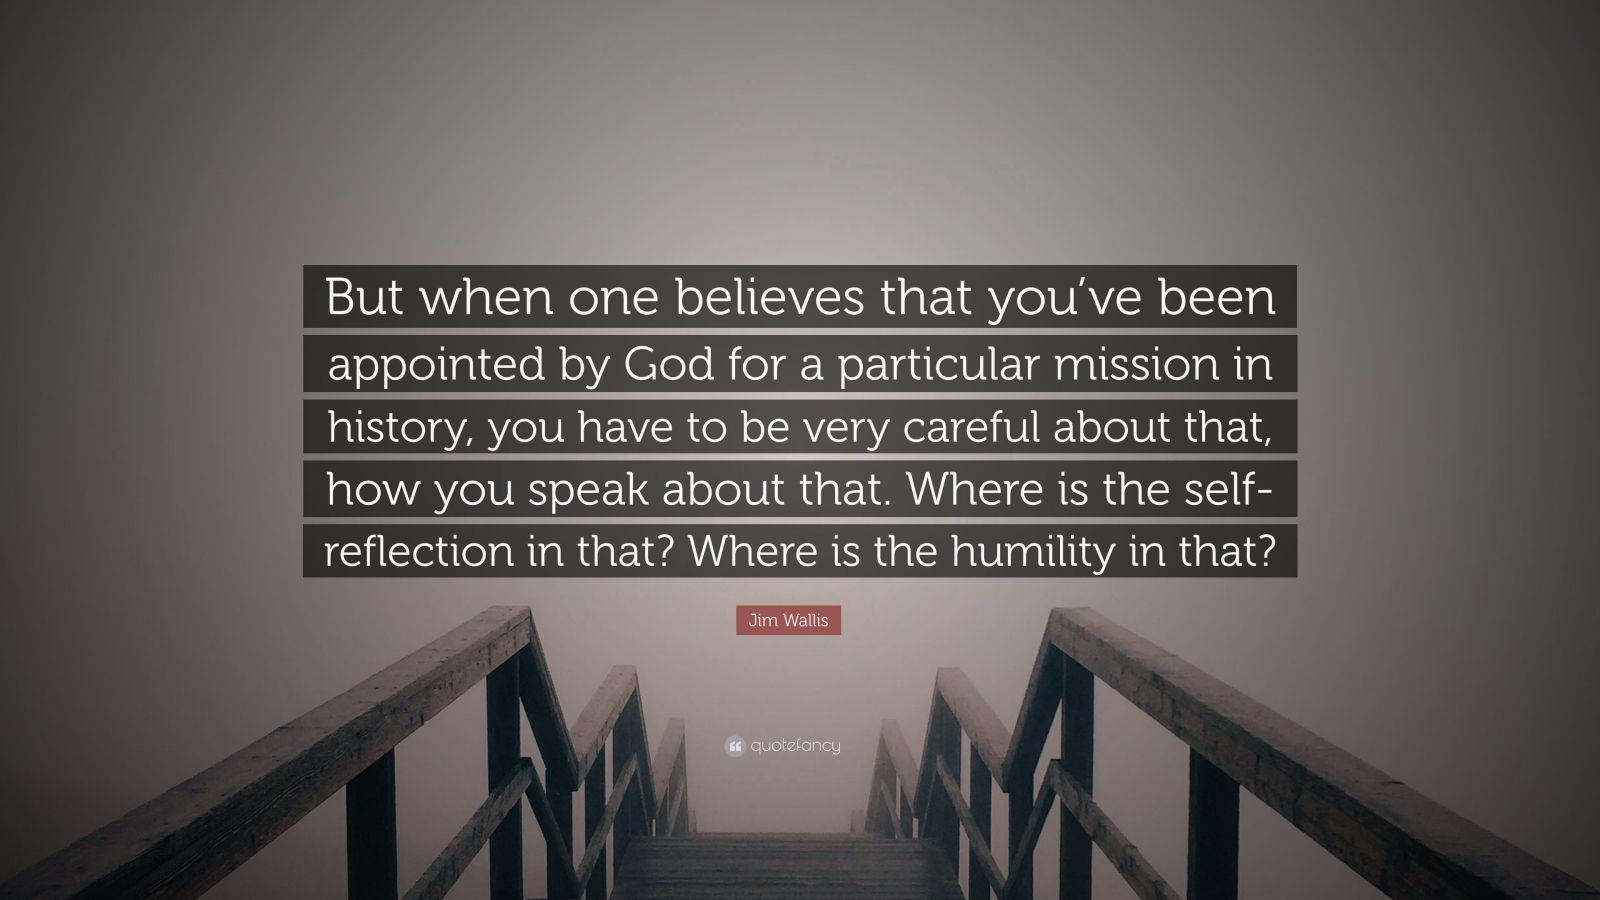 """Jim Wallis Quote: """"But when one believes that you've been appointed by God for a particular mission in history, you have to be very careful about that, how you speak about that. Where is the self-reflection in that? Where is the humility in that?"""""""